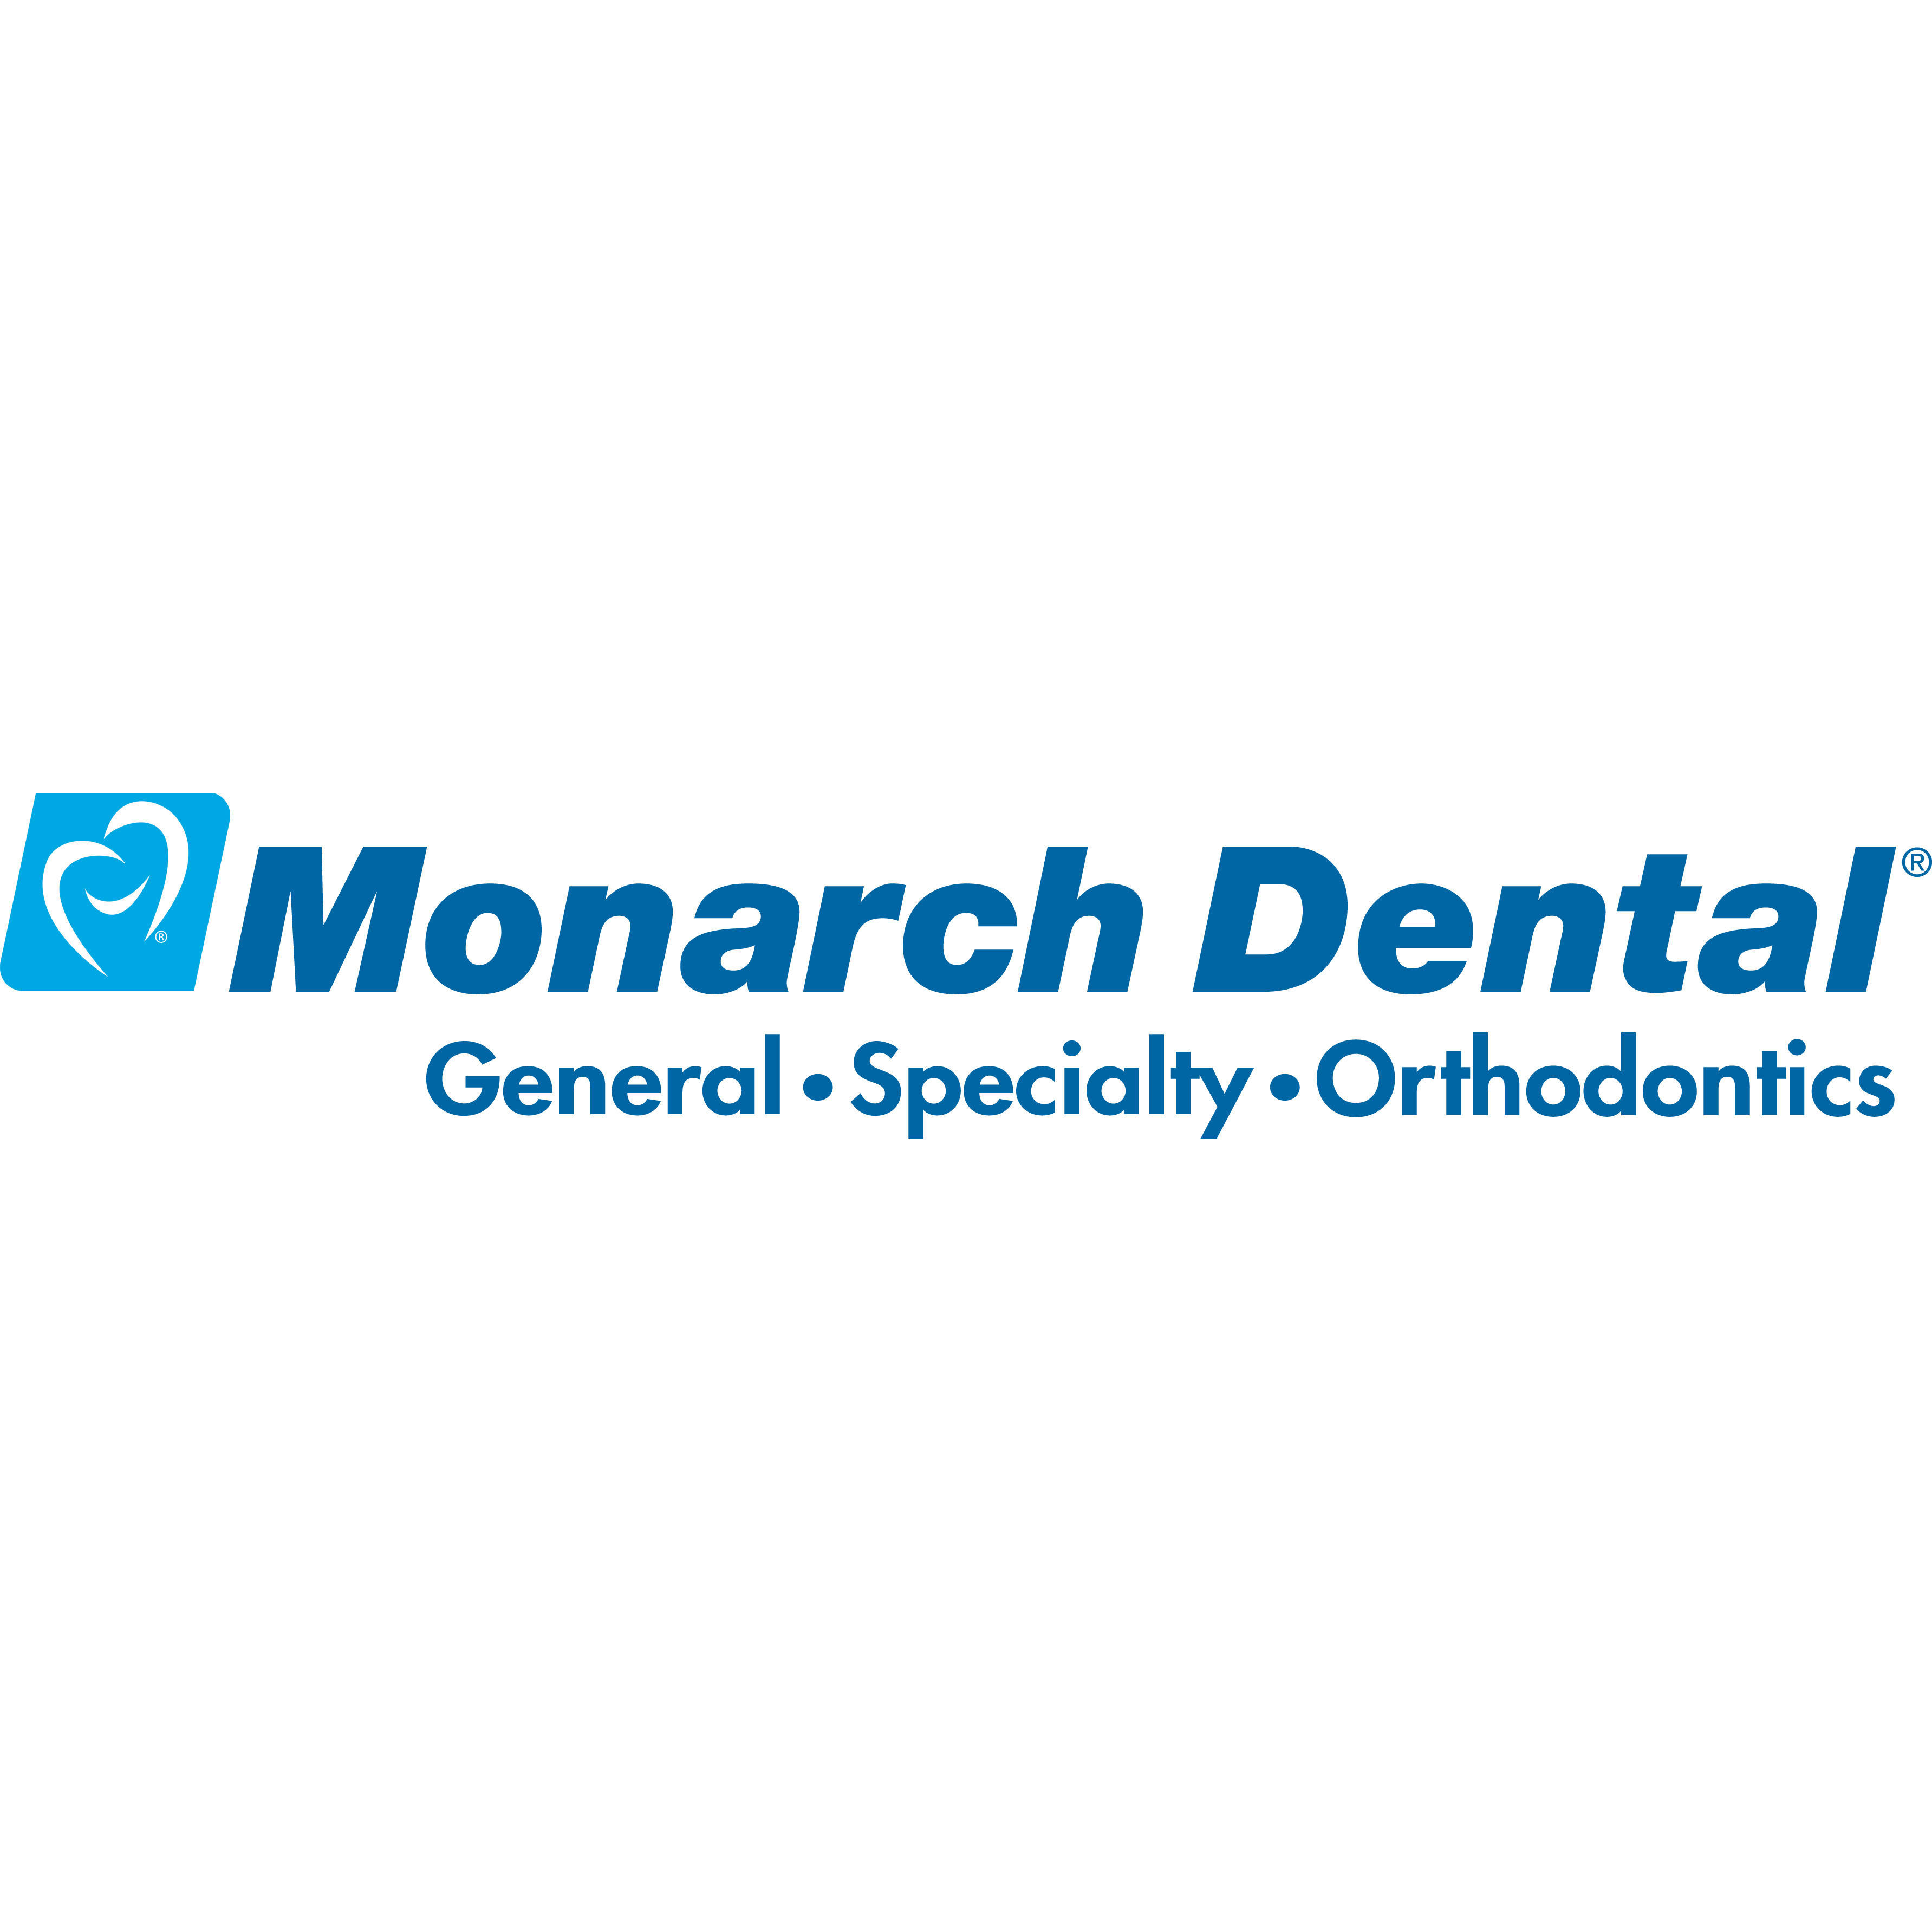 Monarch Dental image 5